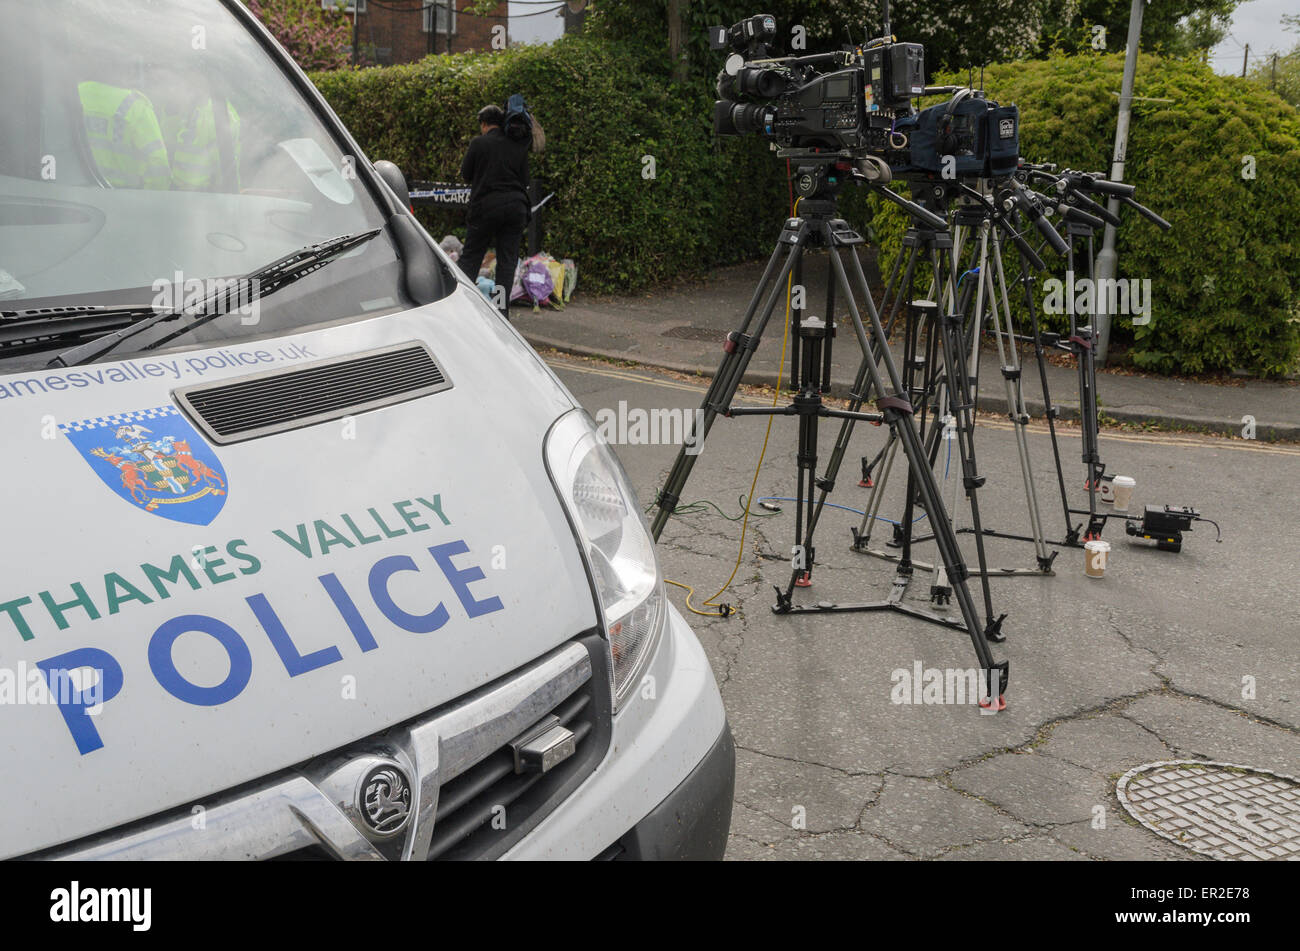 Didcot, UK. 25th May, 2015. The Police cordon at the scene of a triple murder at Vicarage Road, Didcot, Oxfordshire, - Stock Image